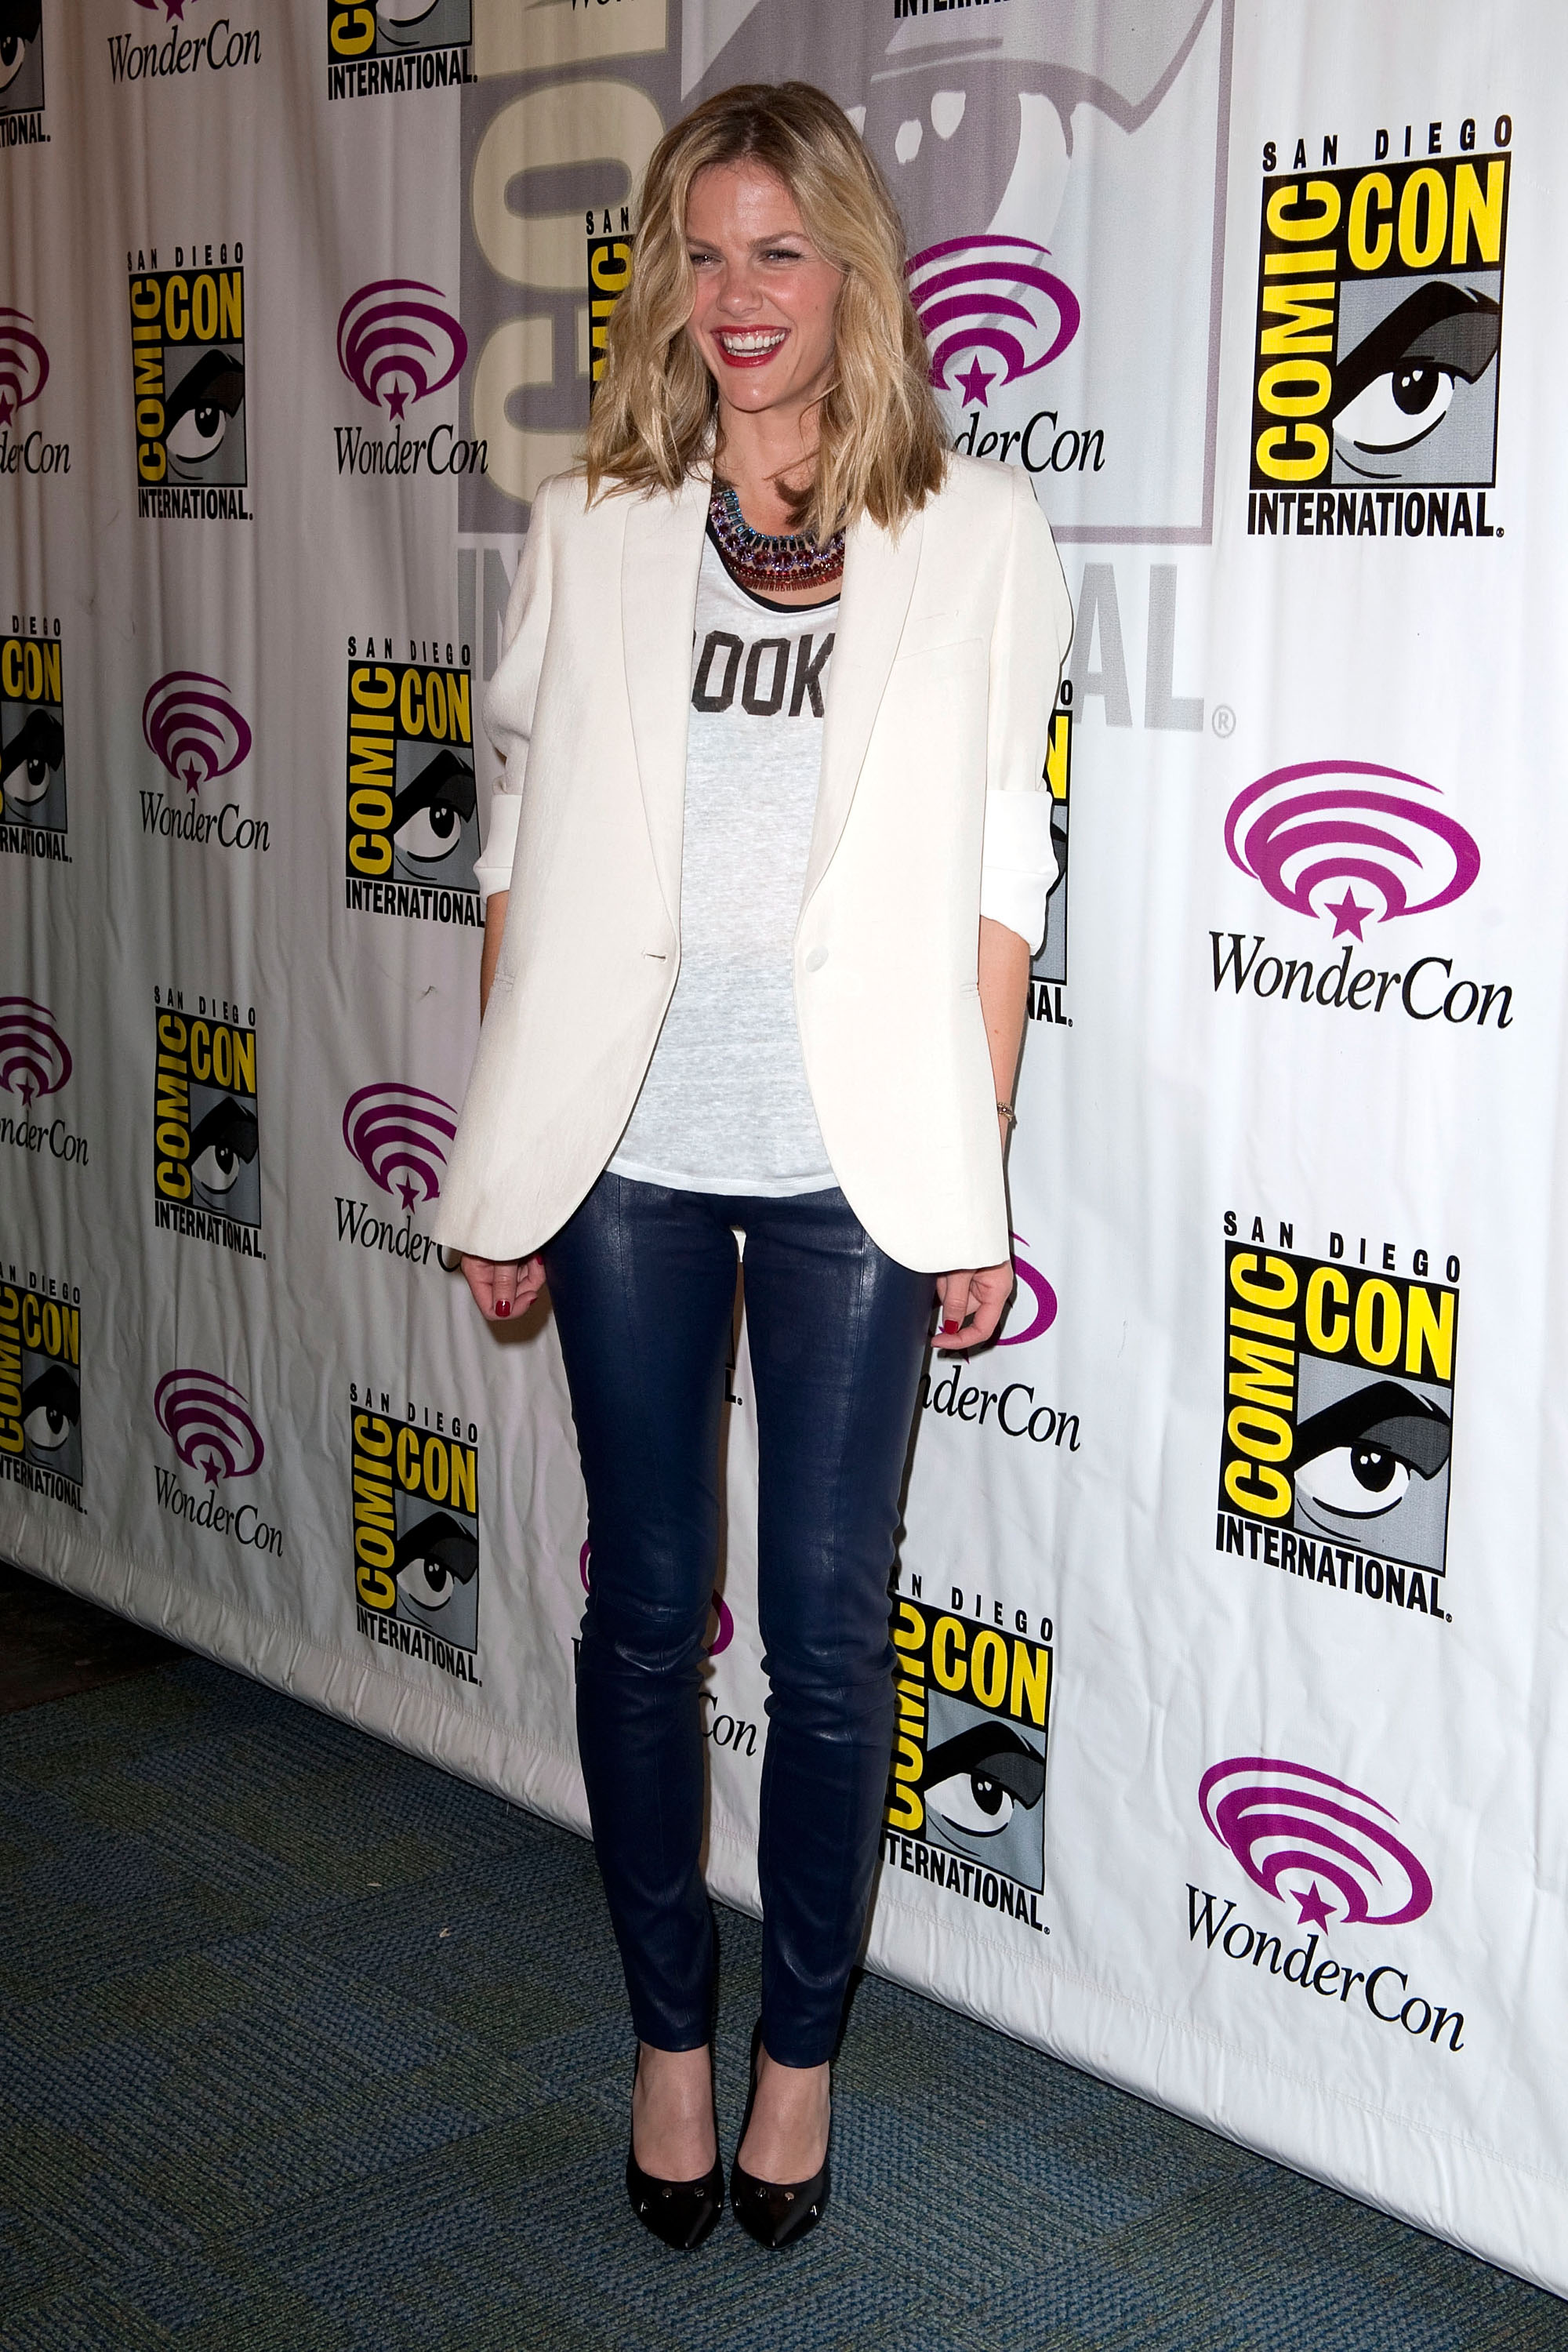 Brooklyn Decker kicked off the promotional tour in a crisp white ...